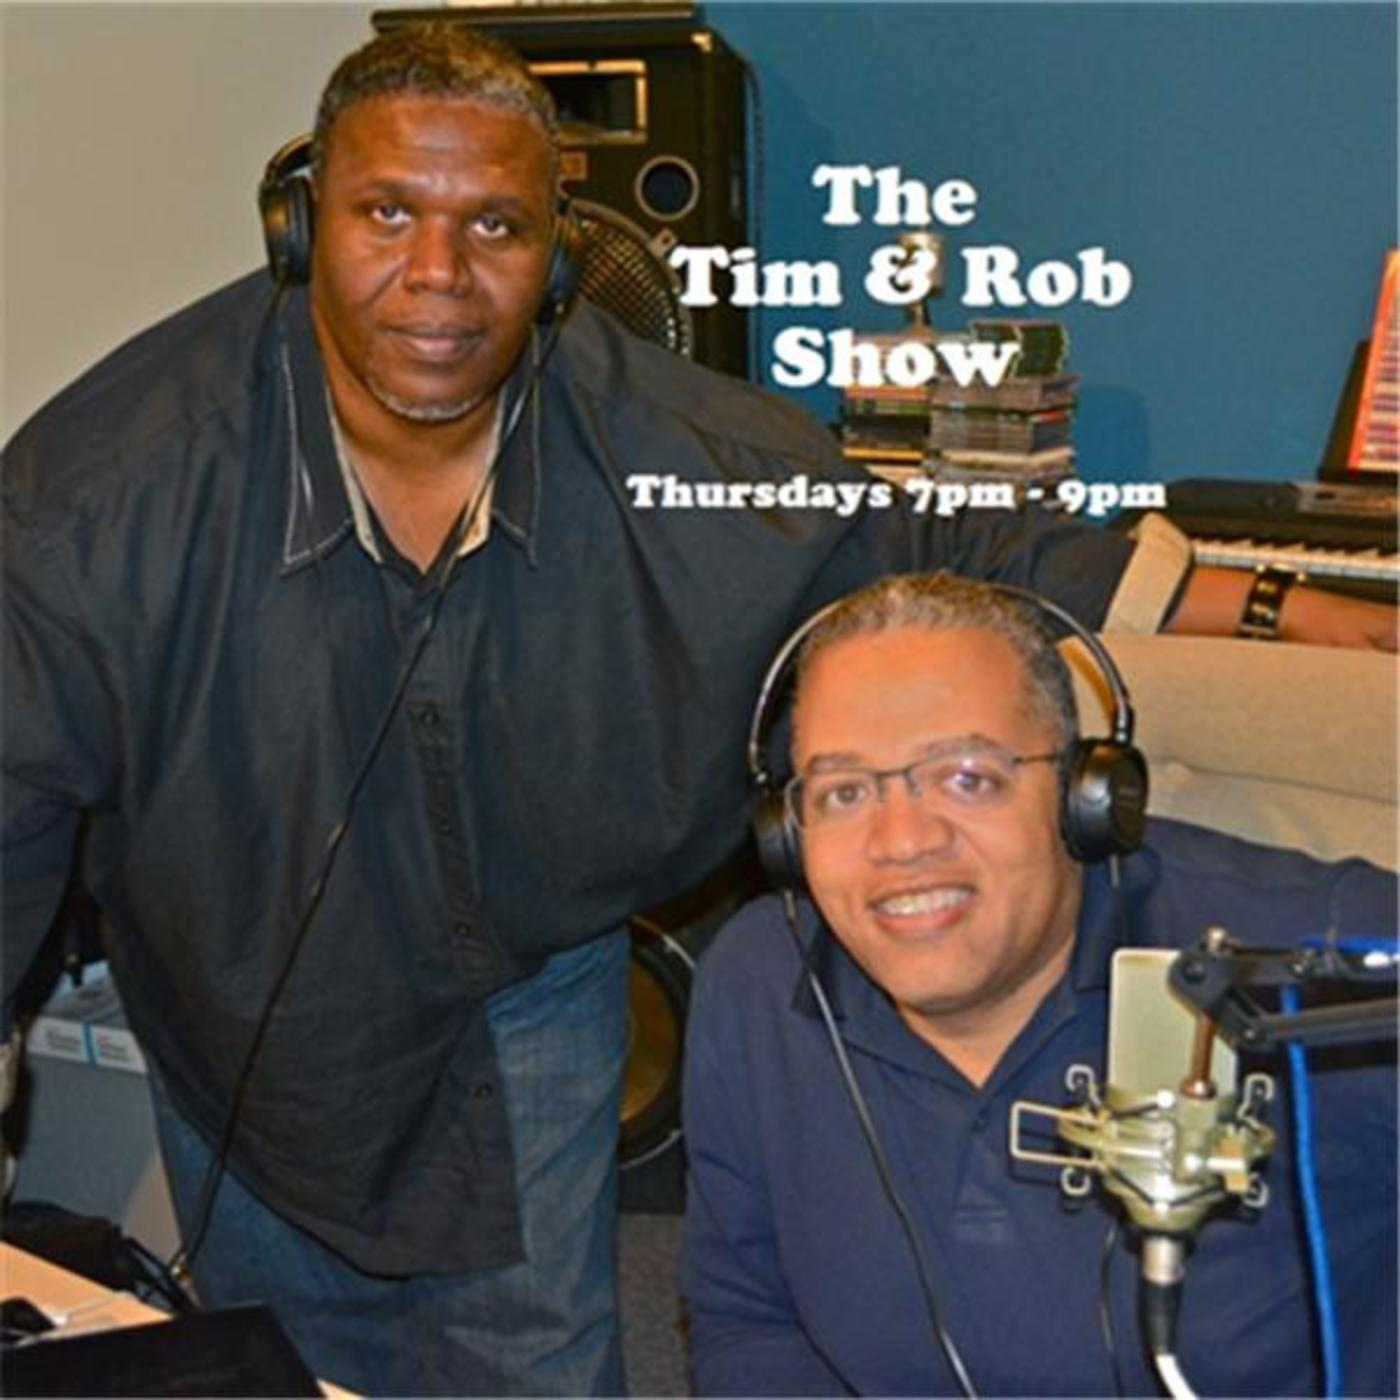 The Tim and Rob Show